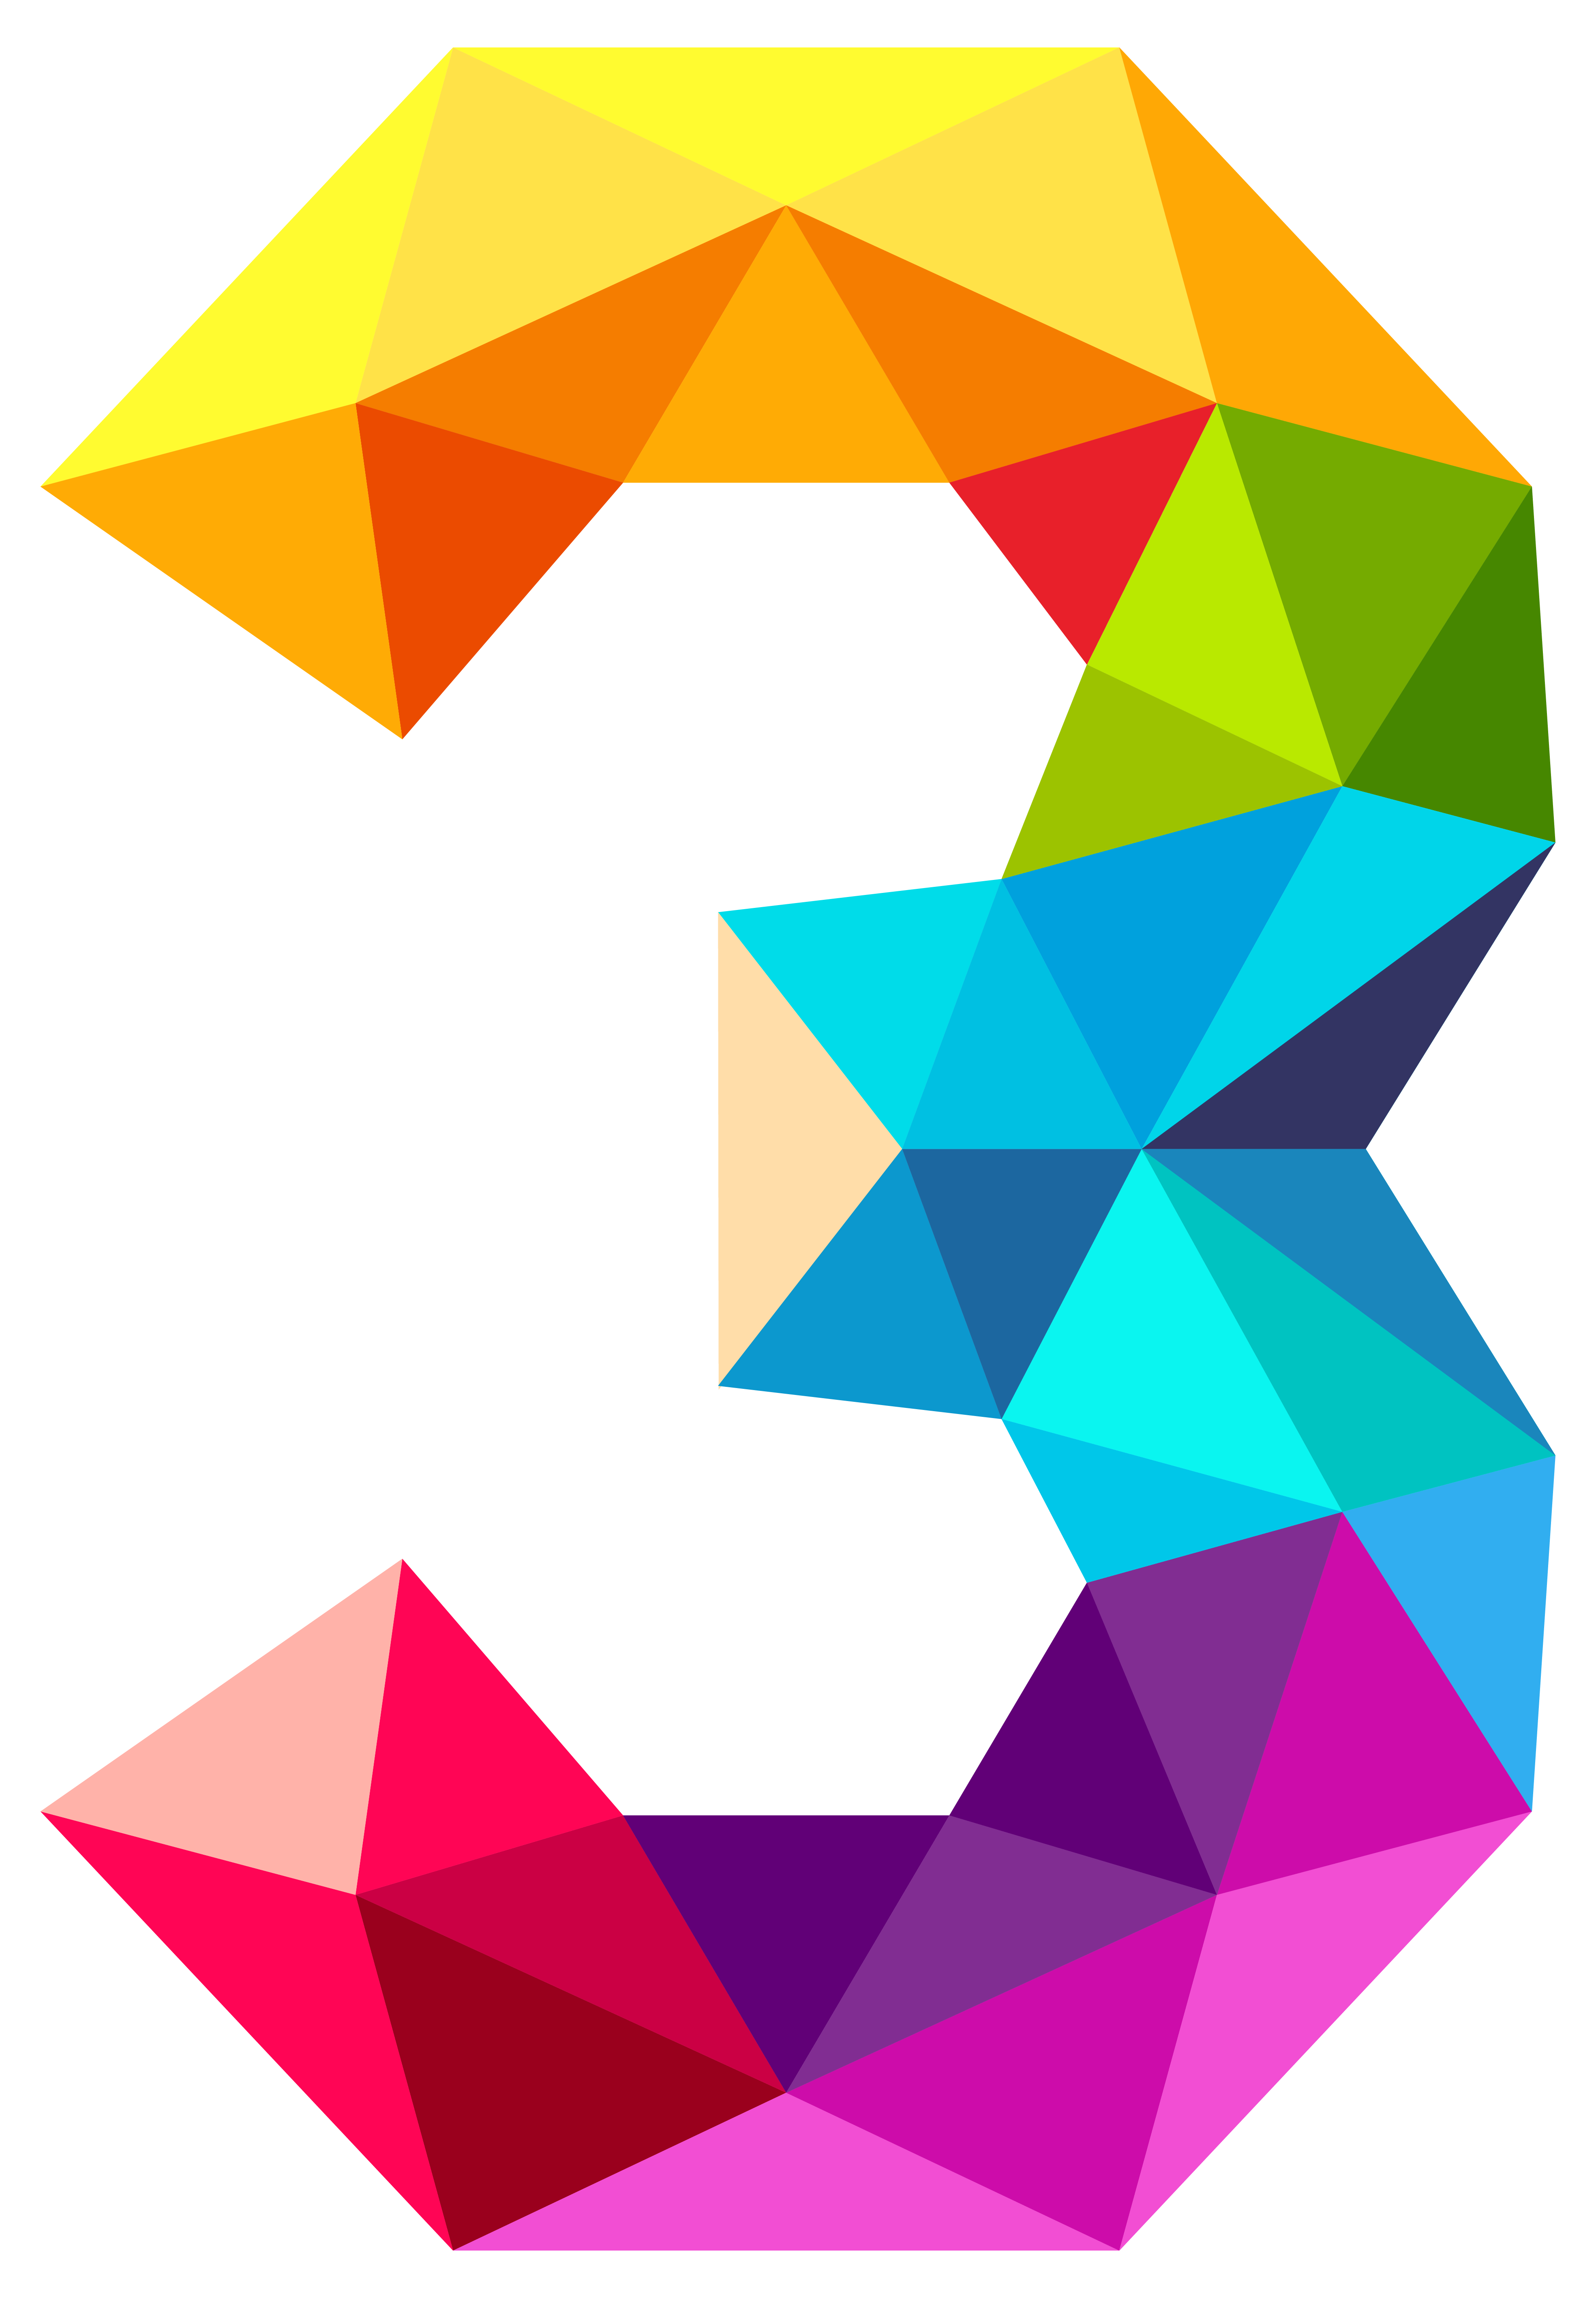 Colourful Triangles Number Three PNG Clipart Image.